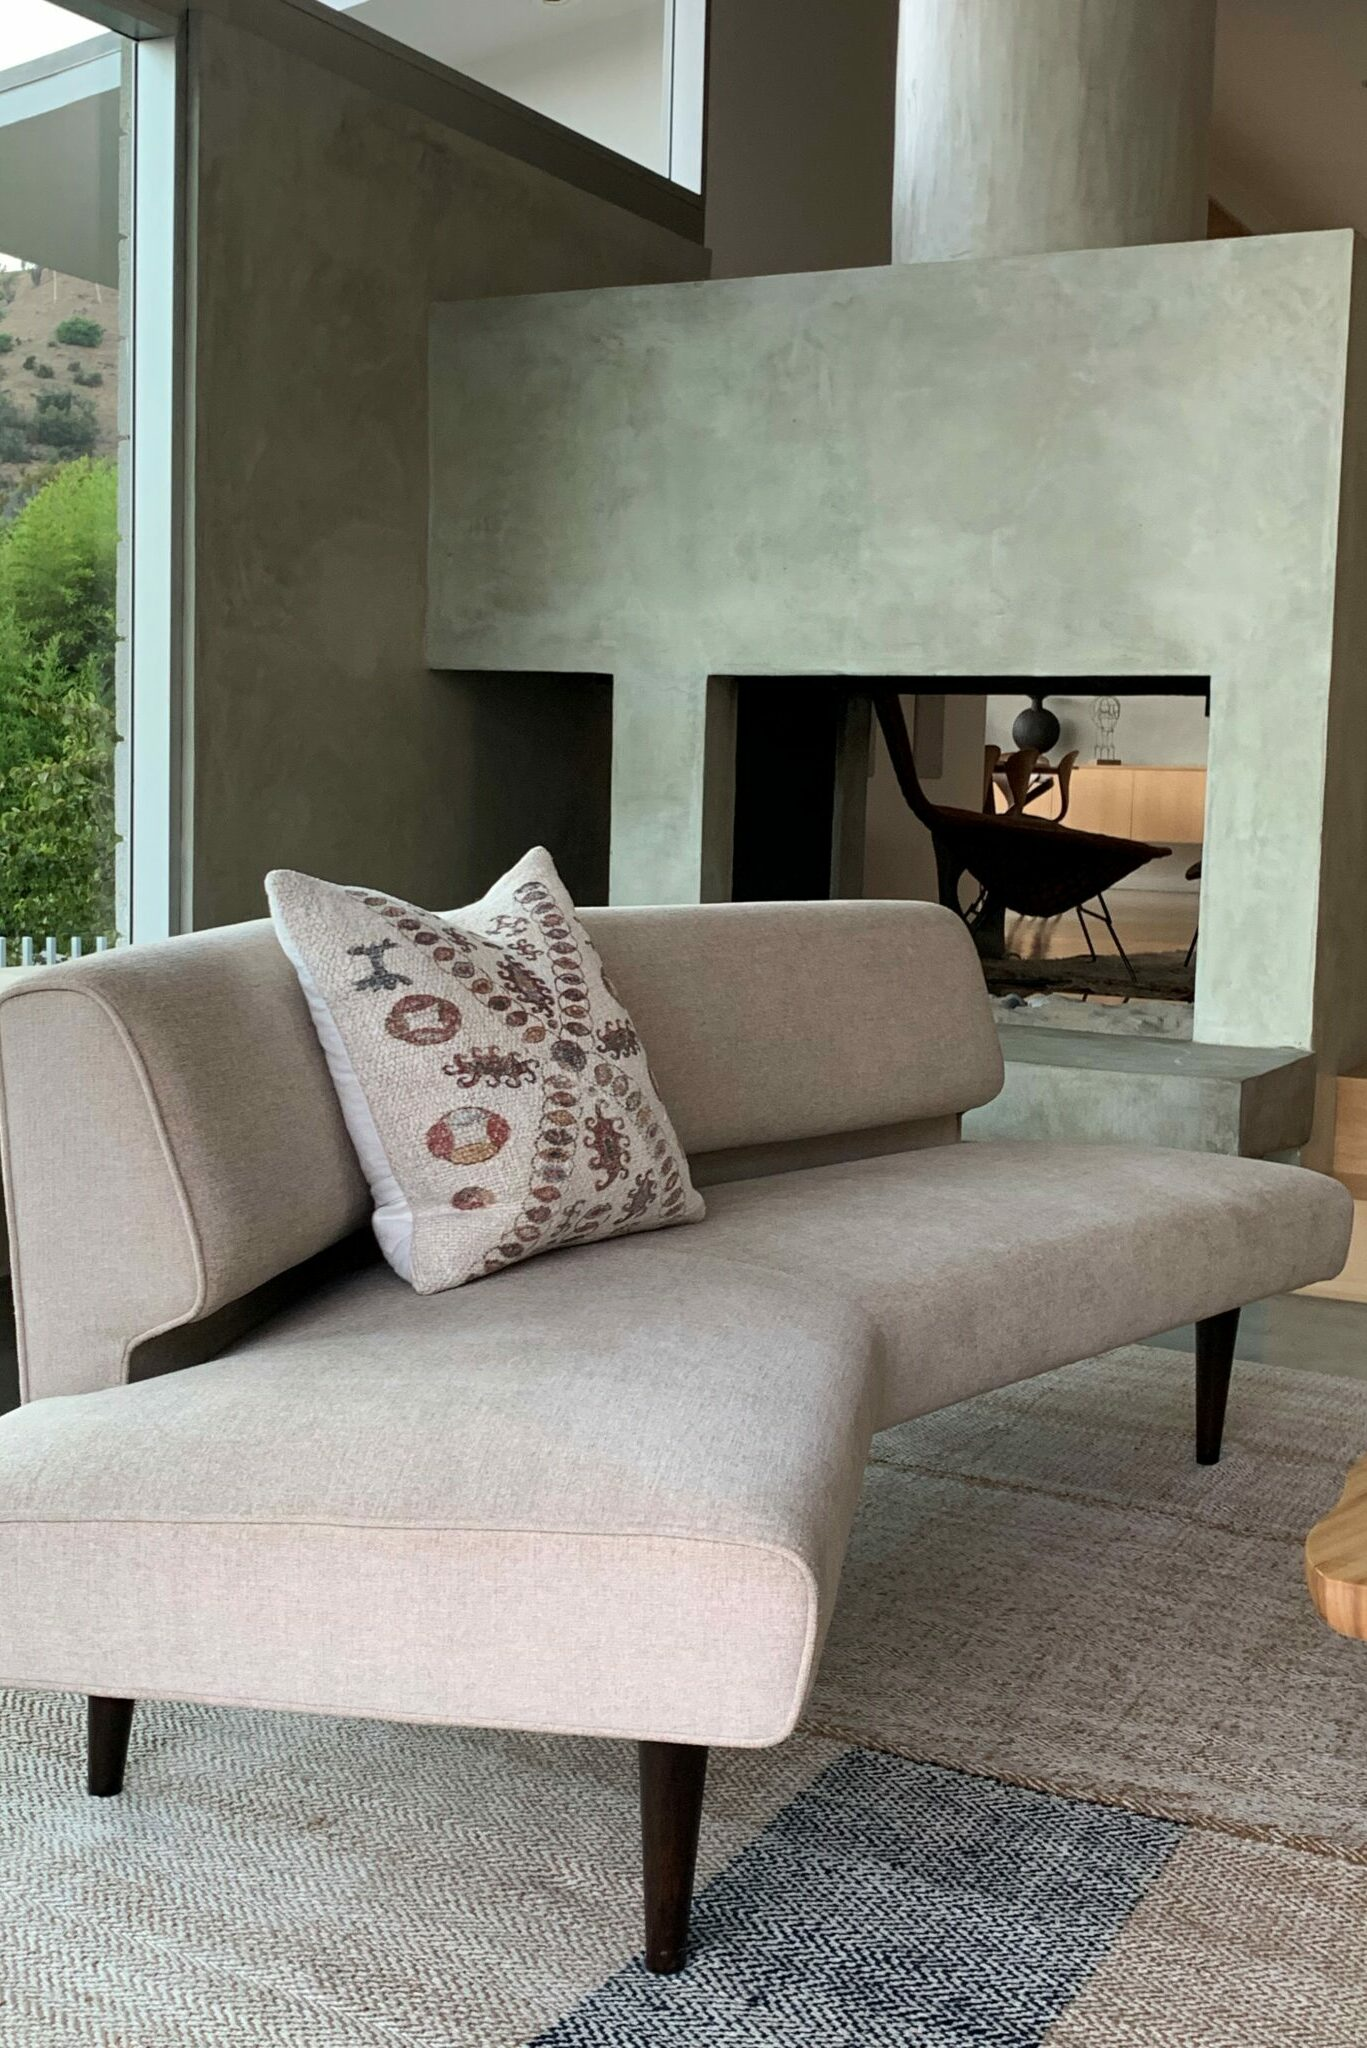 jase-sullivan-hollywood-hills-project-i2